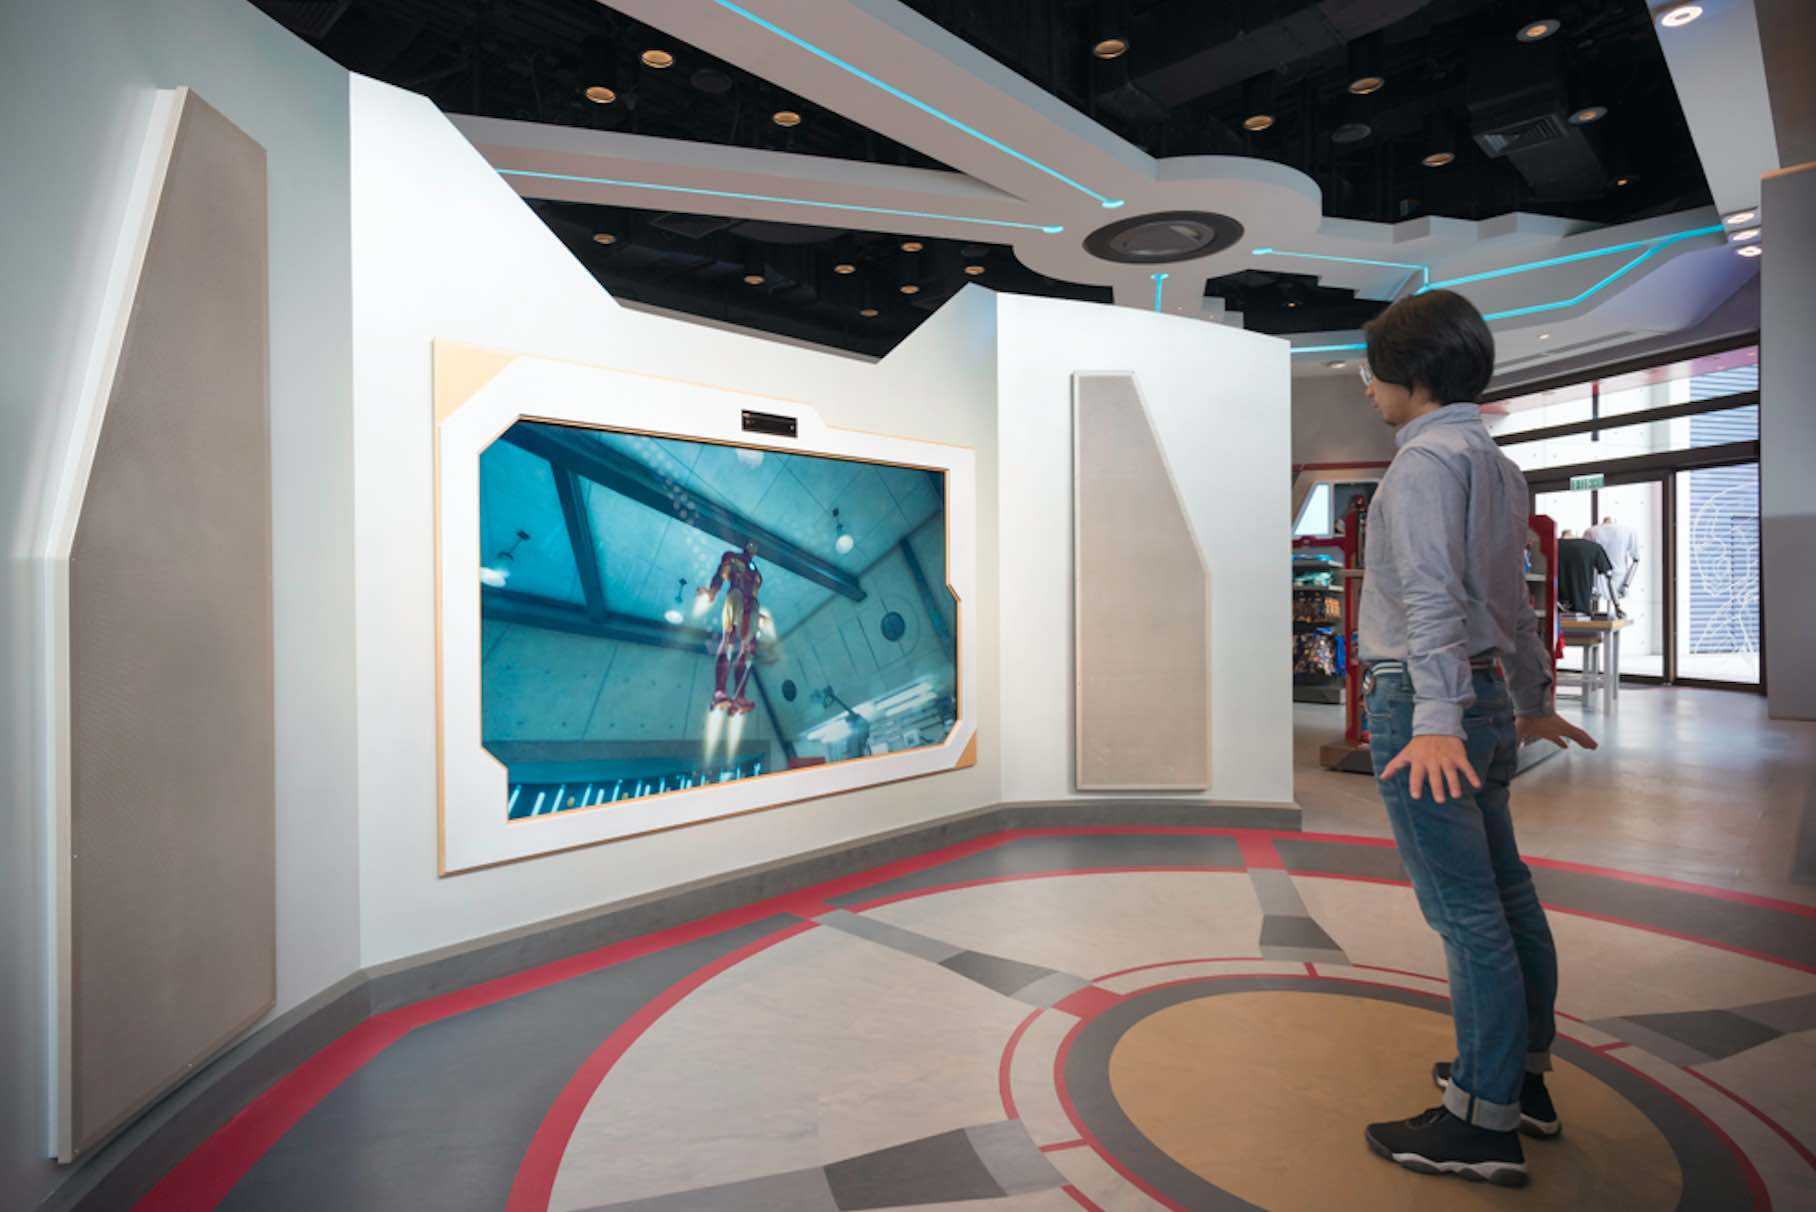 iron-man-simulator-at-hong-kong-disneyland-aspirantsg